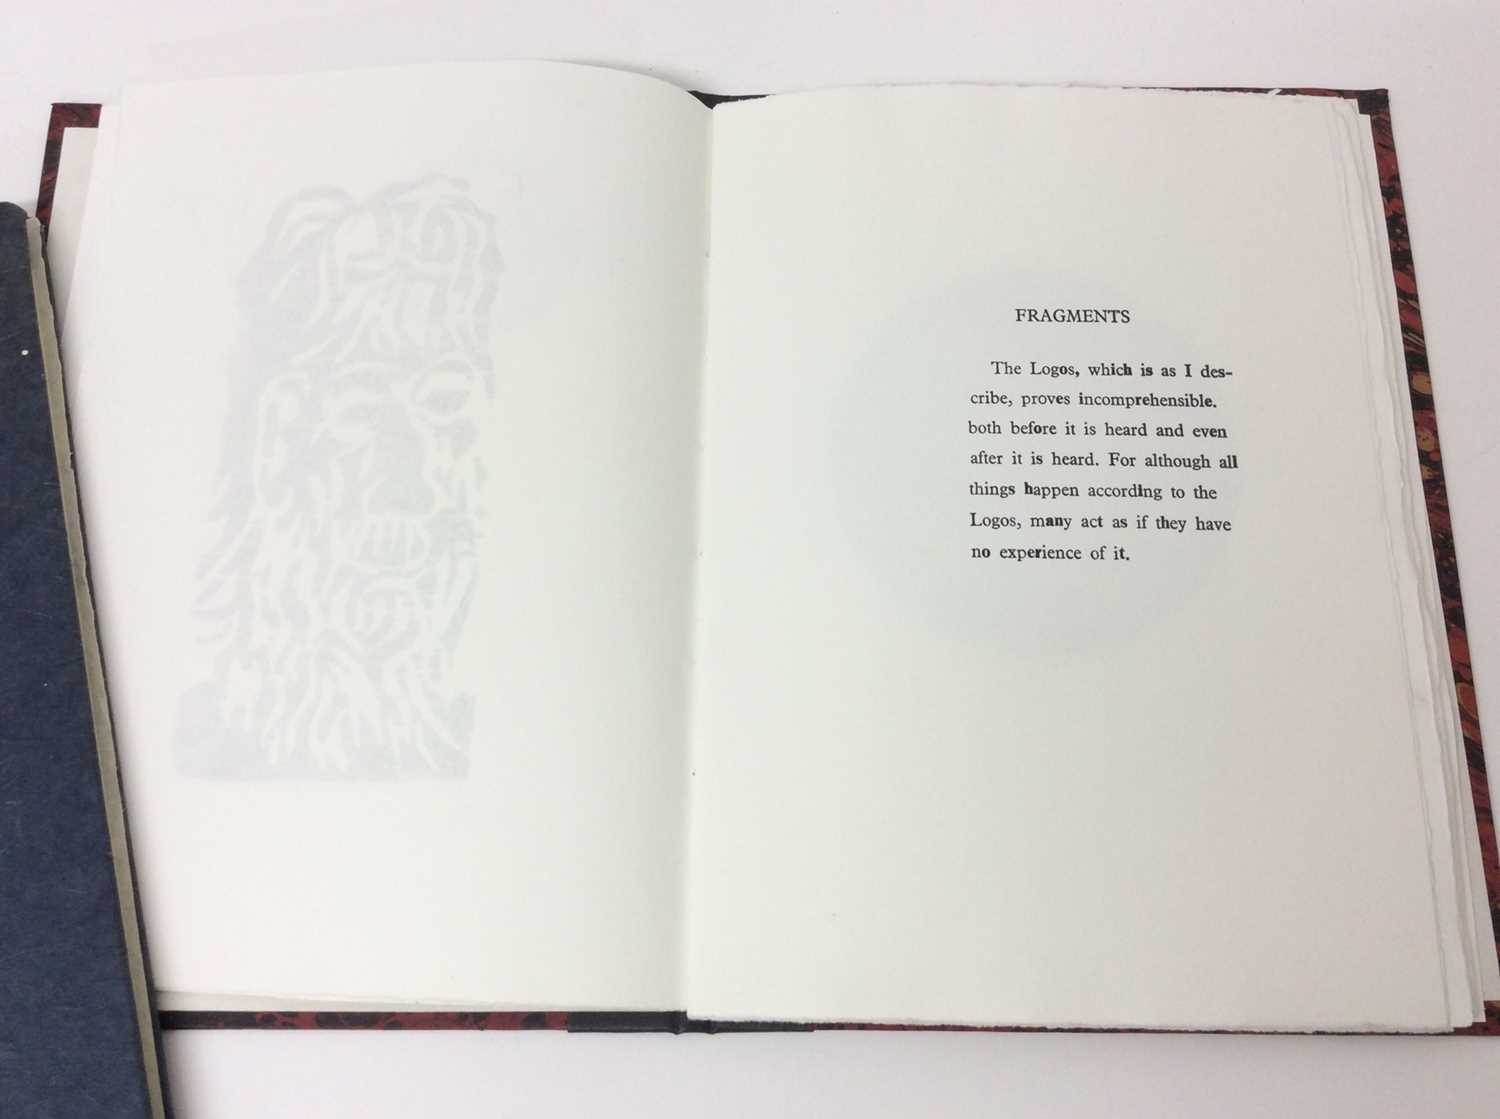 P. J. Jackson - three very limited edition private publications - Image 7 of 11